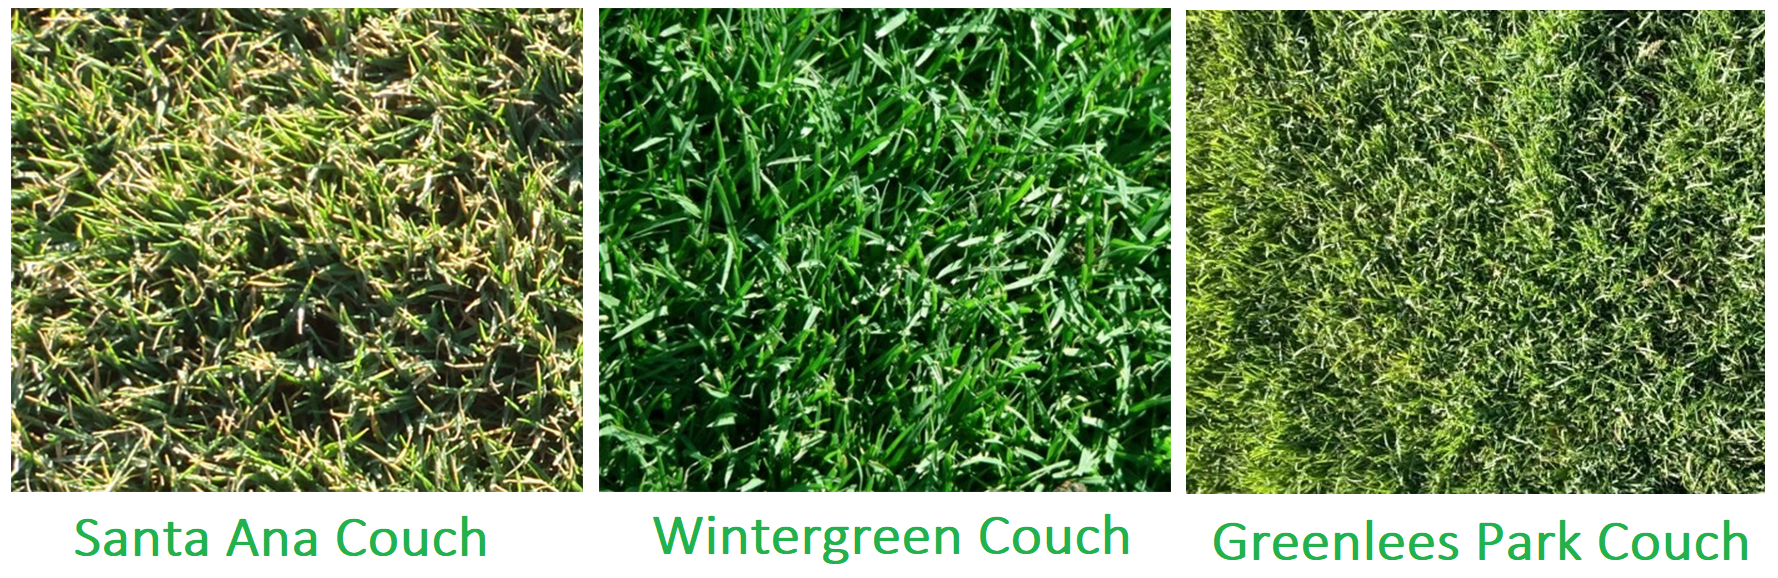 Couch Grass Varieties Also Make A Good Choice Grass How To Make